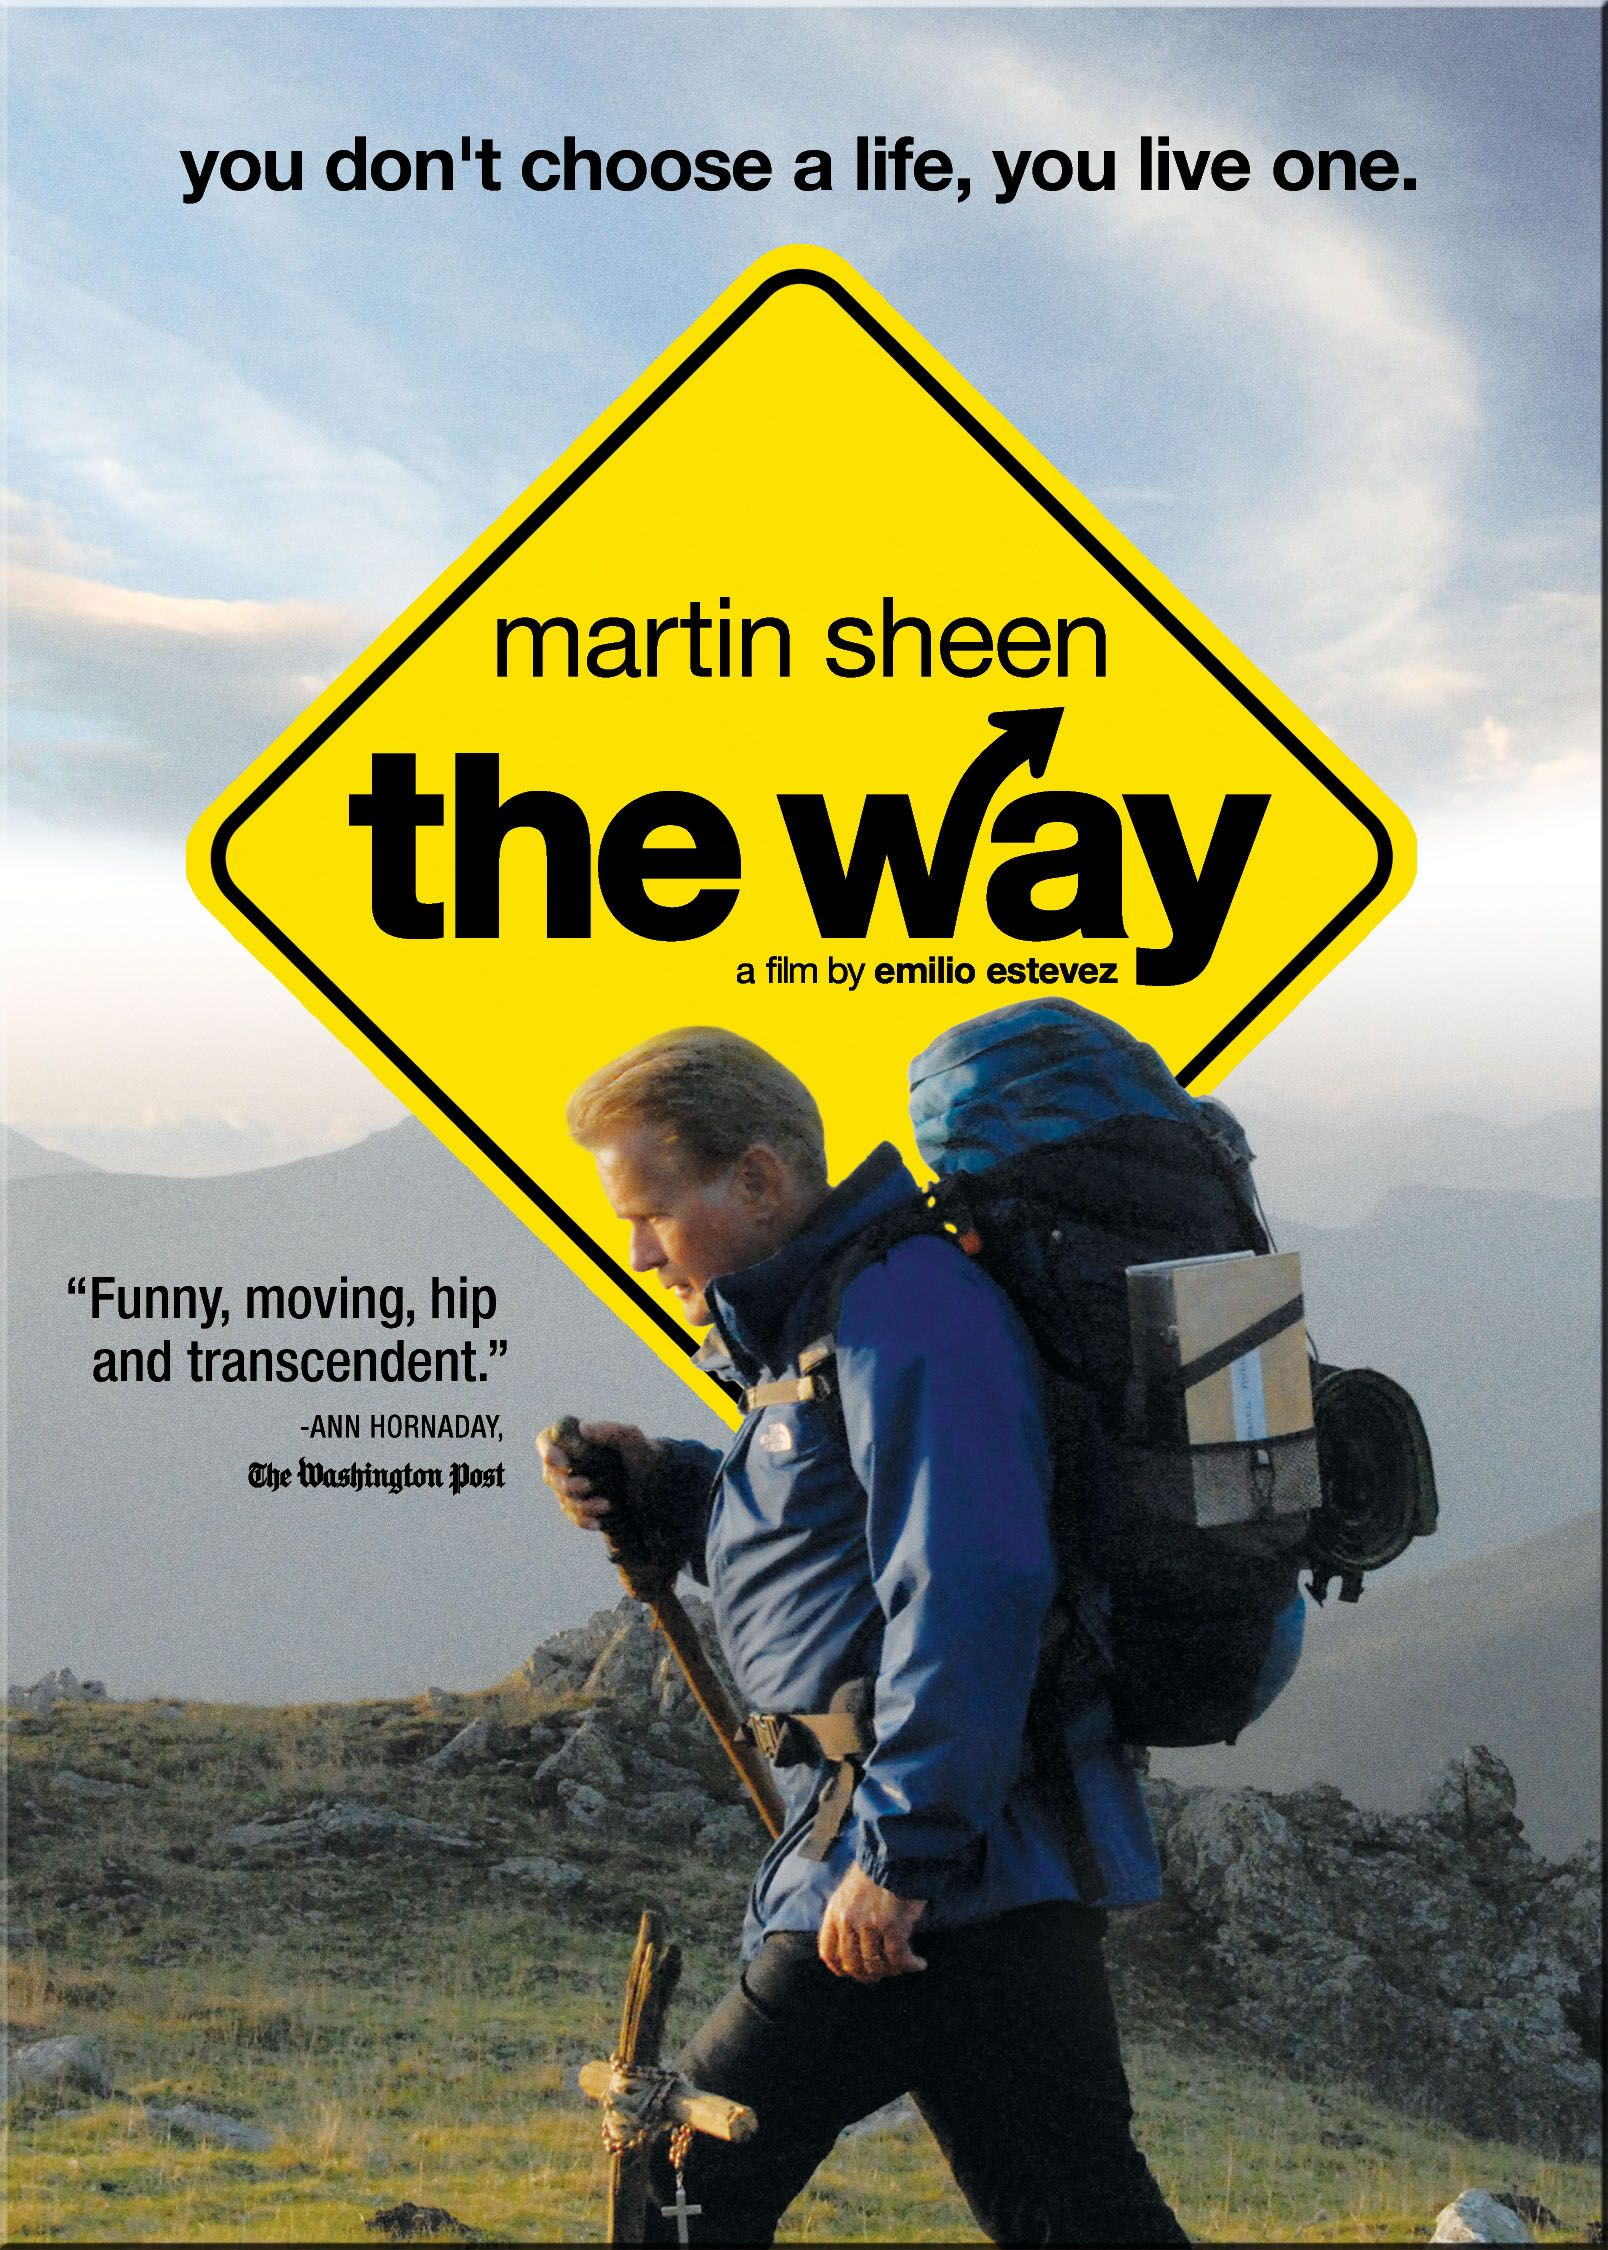 """""""The Way"""" with Martin Sheen -- I loved this movie. It was filmed in it's entirety in Spain and France along the actual Camino de Santiago. It truly is an inspiring story about stepping out of our daily lives to simply walk, reflect and connect with others. I hope to walk the Camino de Santiago one day! It's on my bucket list! :)"""